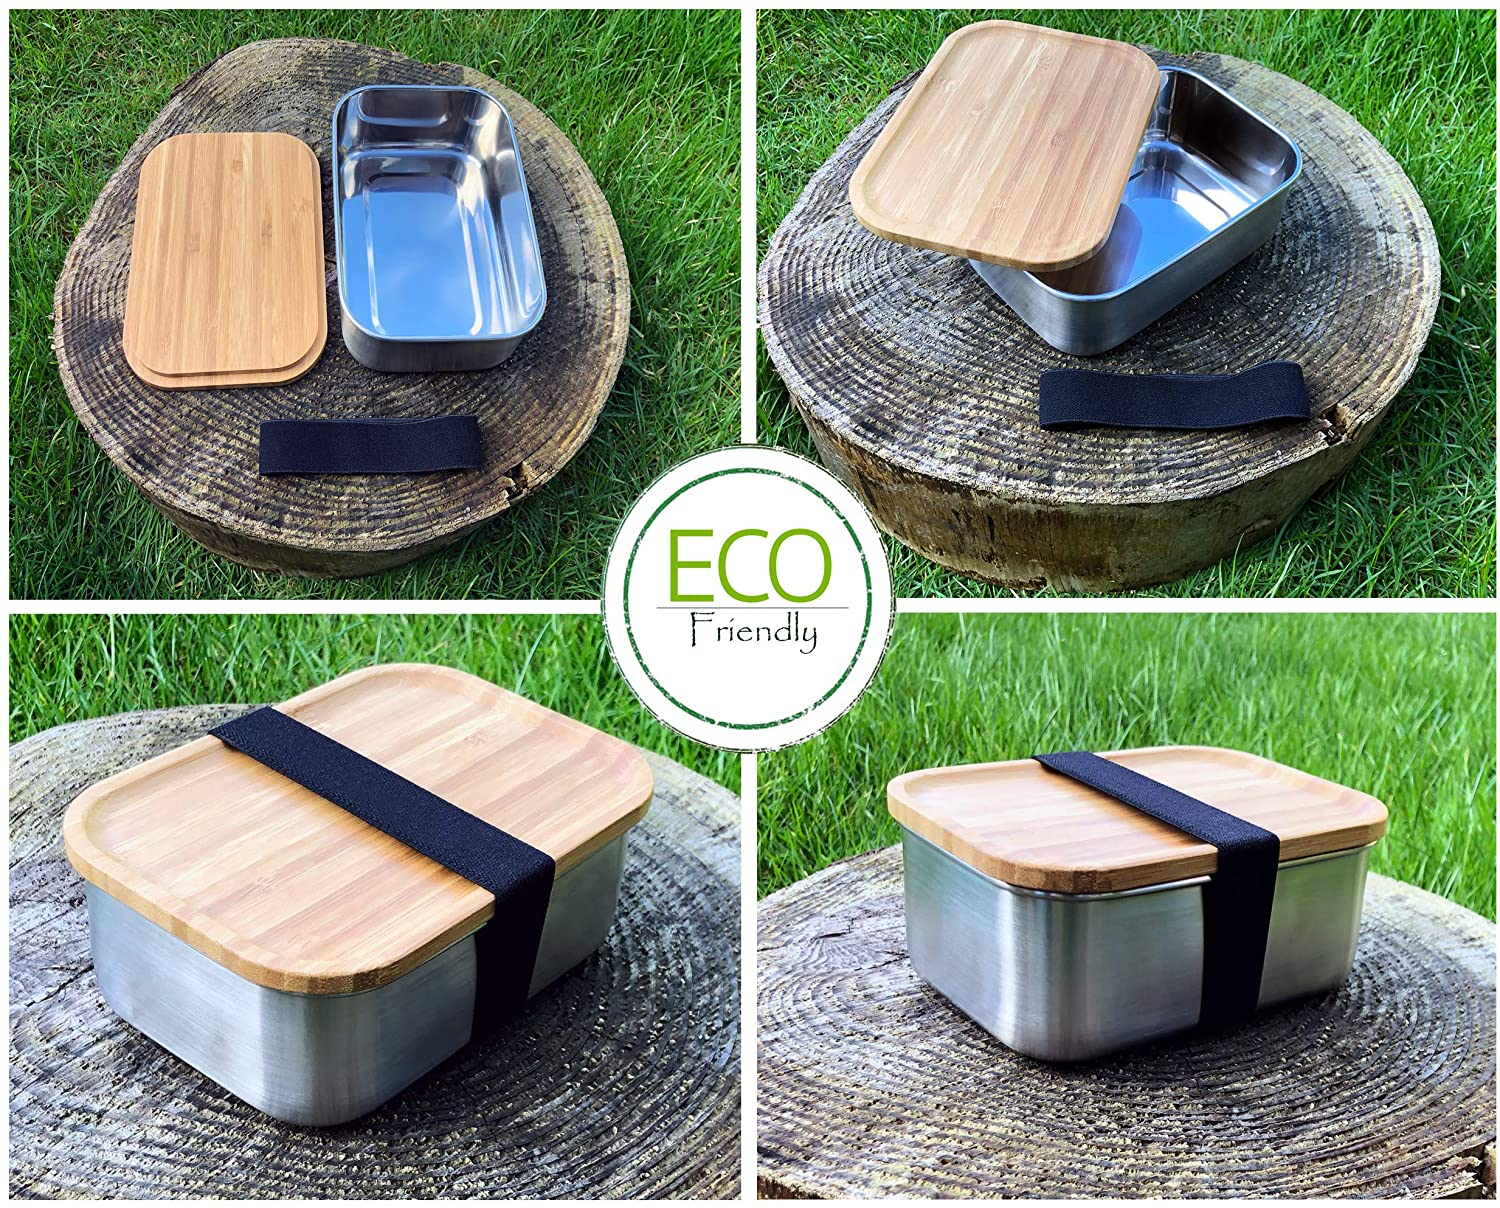 Eco Friendly Stainless Steel Lunch Box Survival Camping Tin with Bamboo Wood Lid